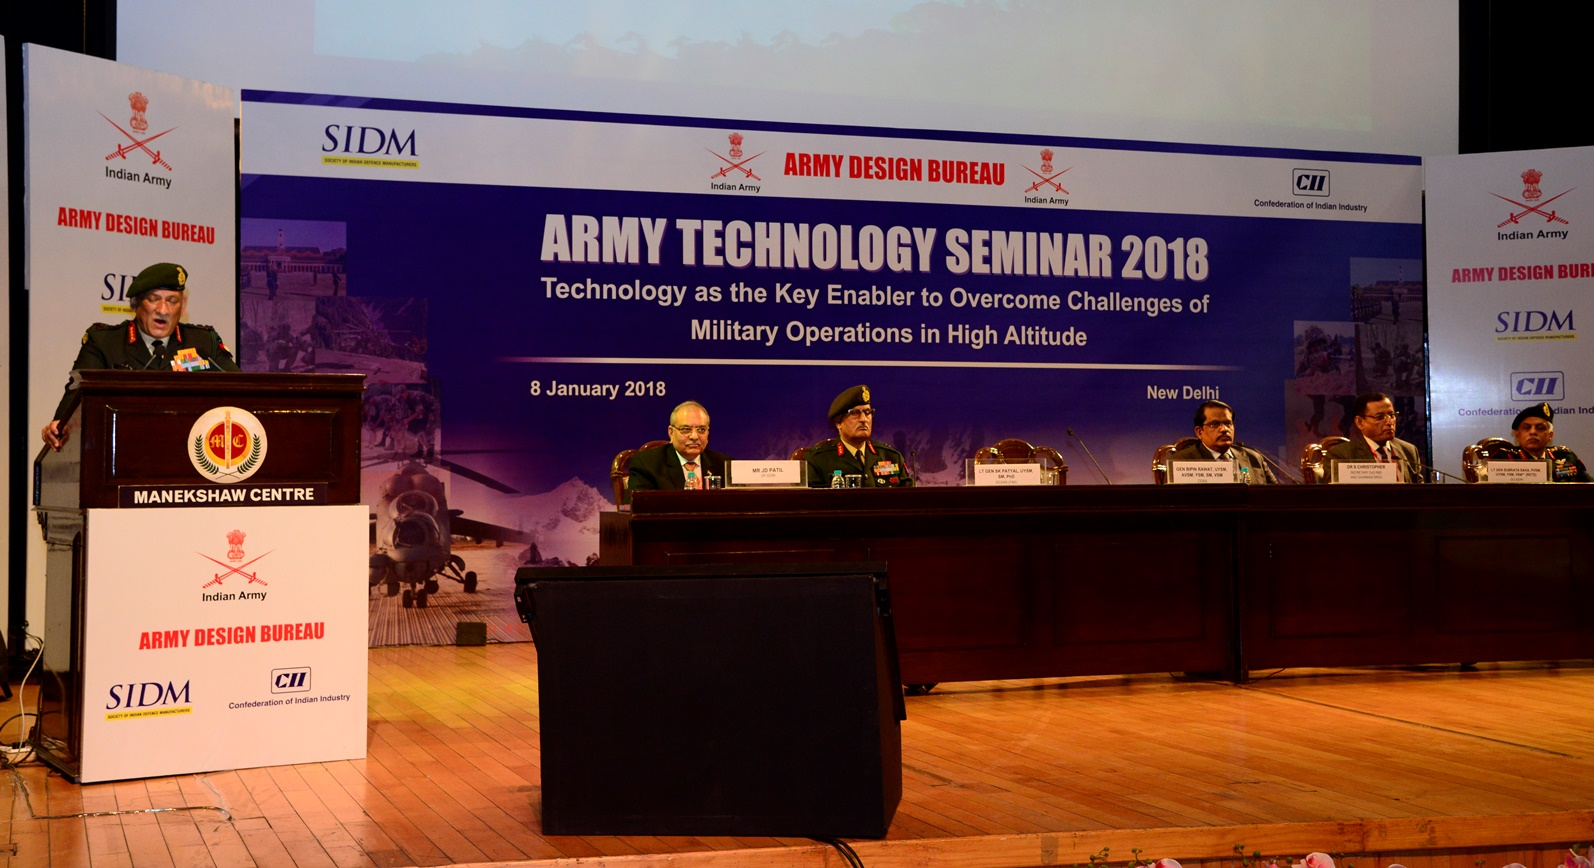 General Bipin Rawat, COAS addressing the inaugural session of ARTECH 2018 in New Delhi on 08 January 2018